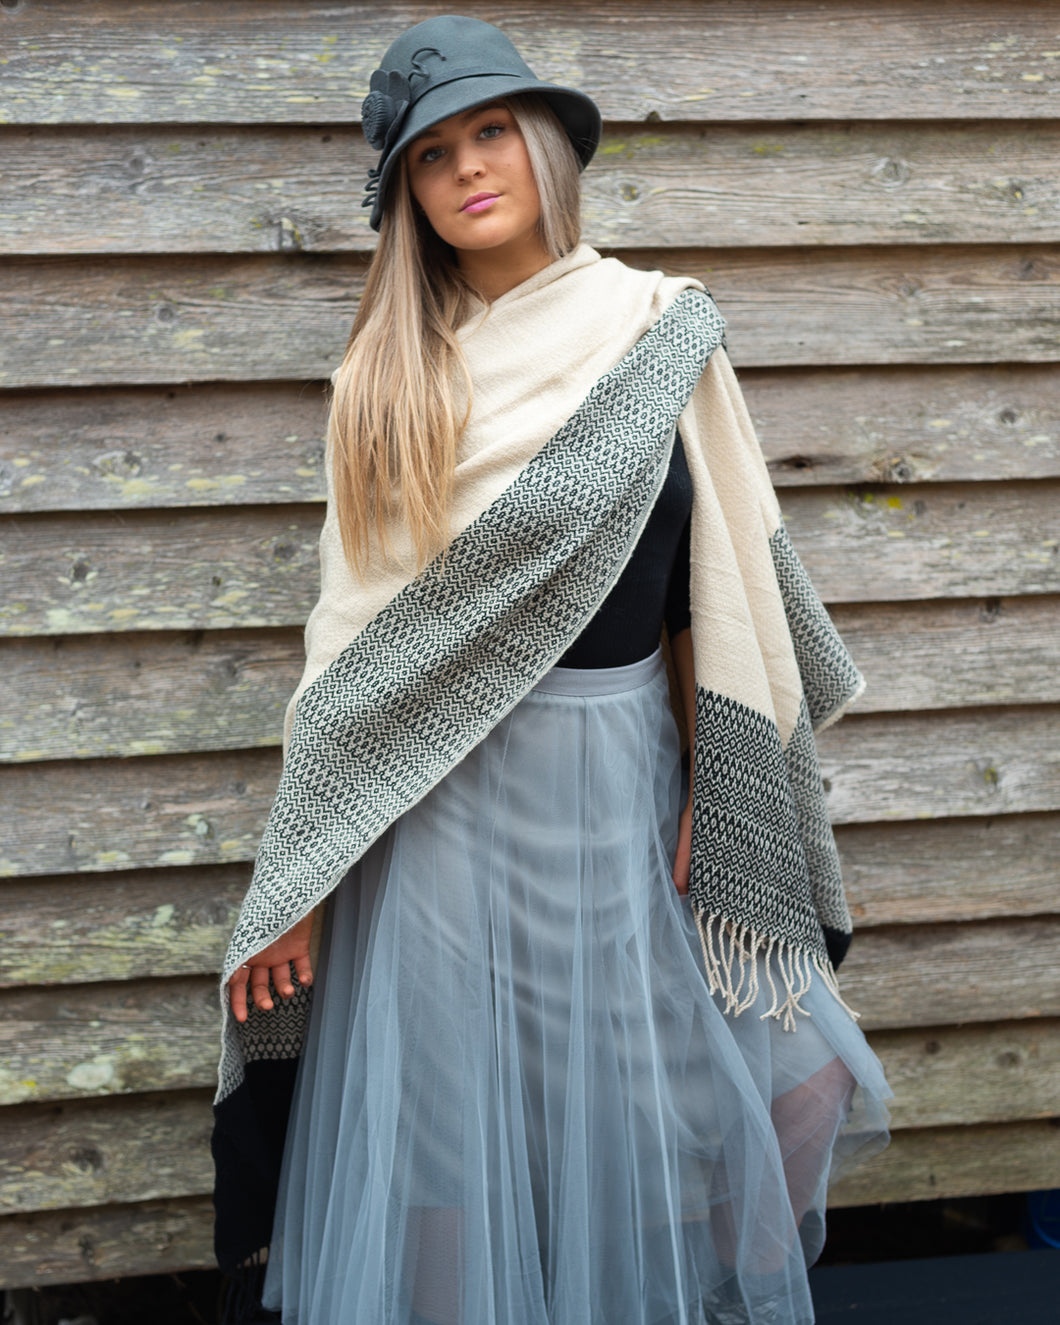 Shawl - Pashmina - Classic Cream with Black Woven Feature - Beths Emporium